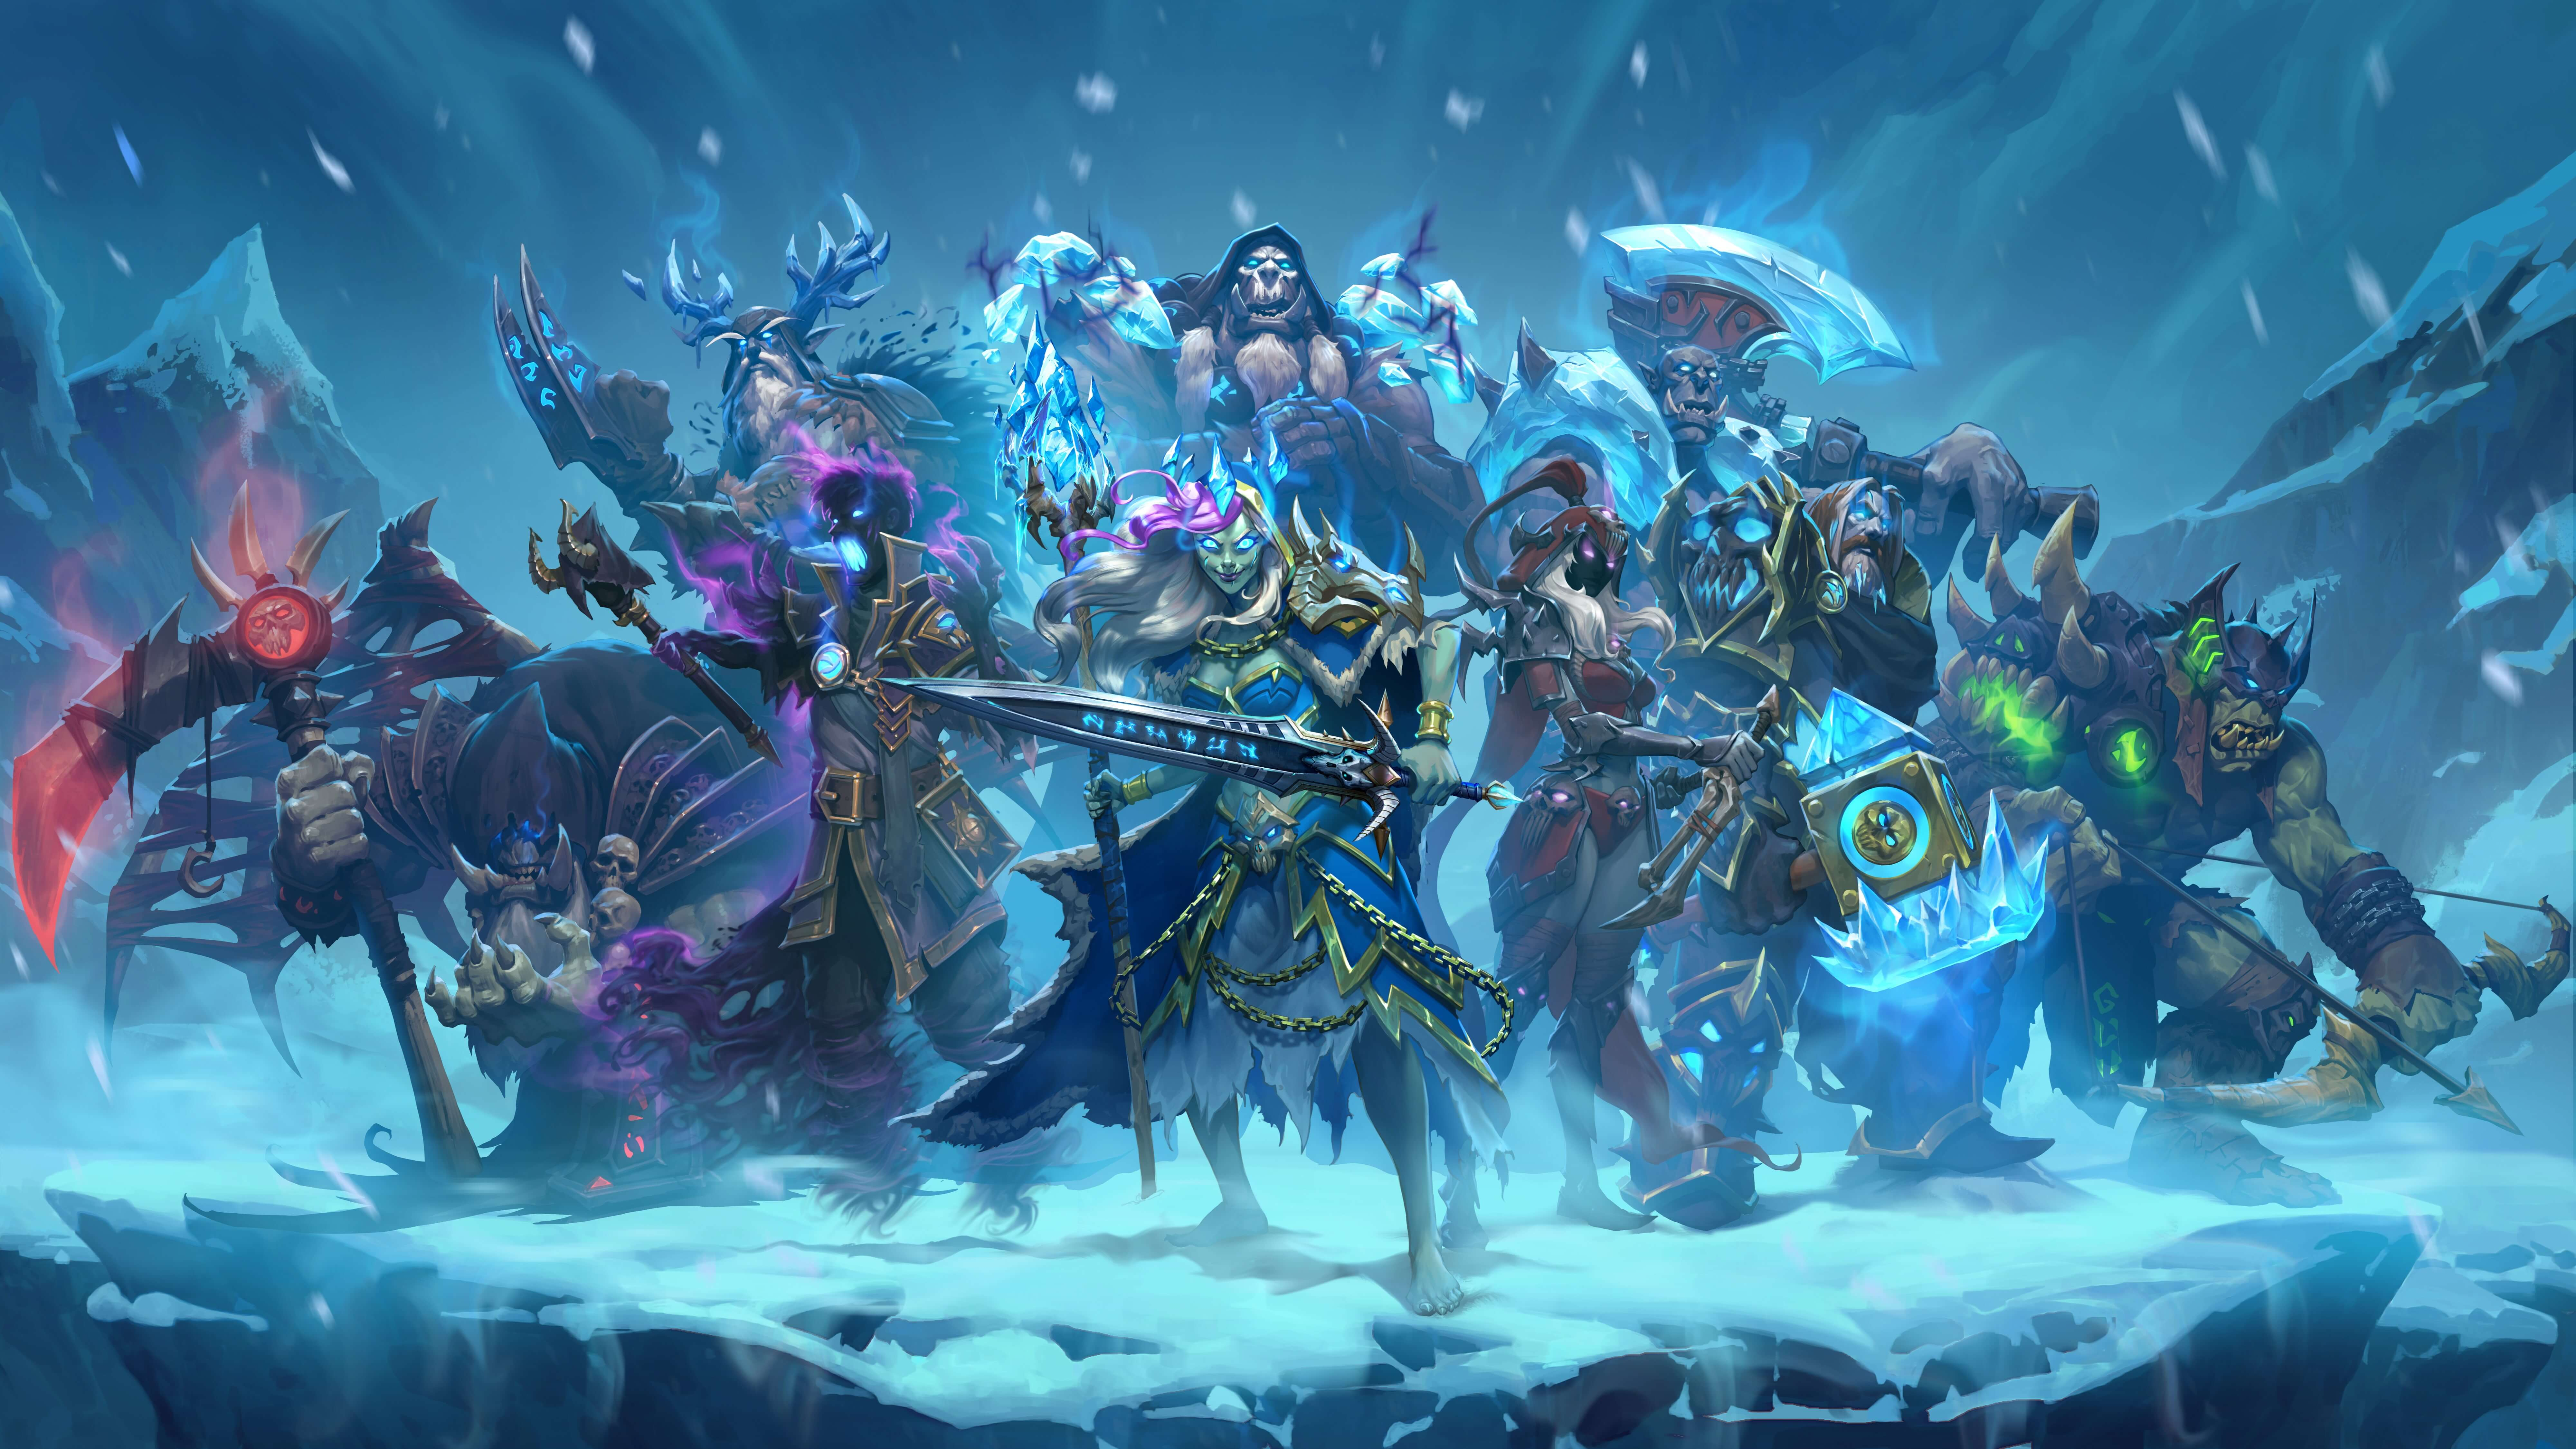 Hearthstone-Ritter-des-Frostthrons-Artwork-2